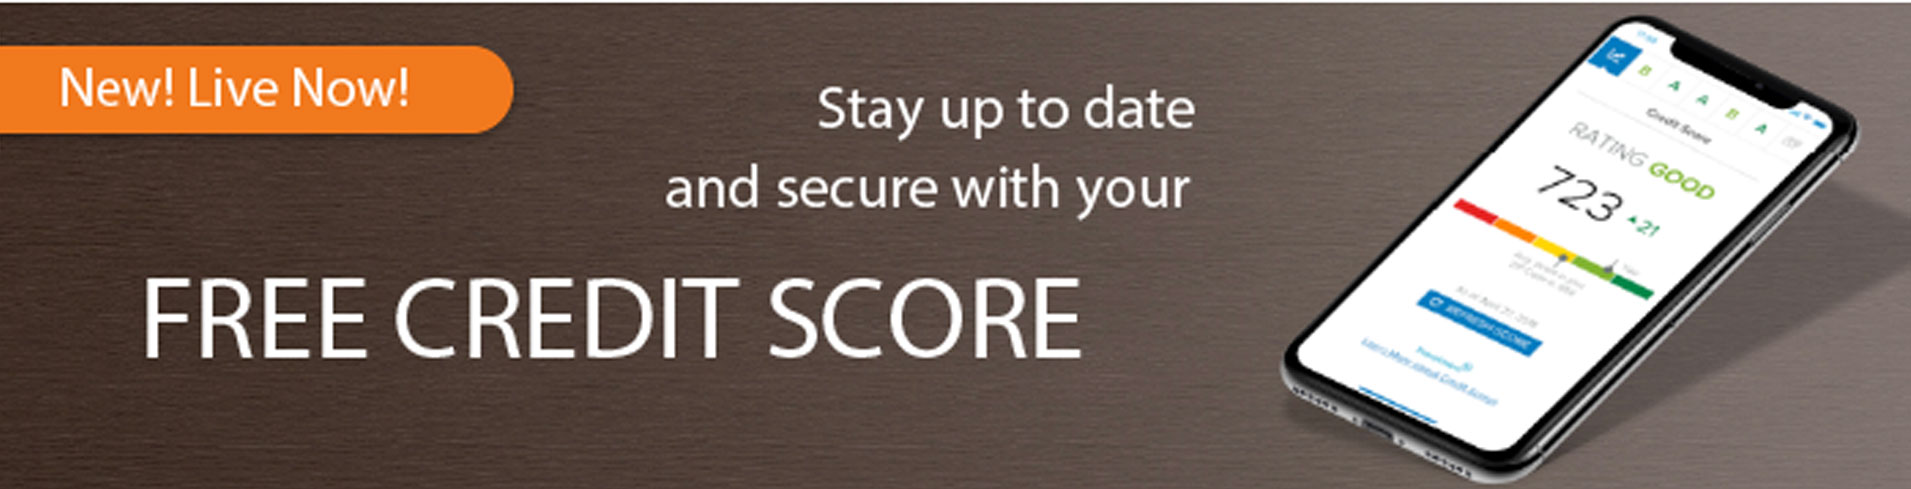 Stay up to date and secure with your free credit score